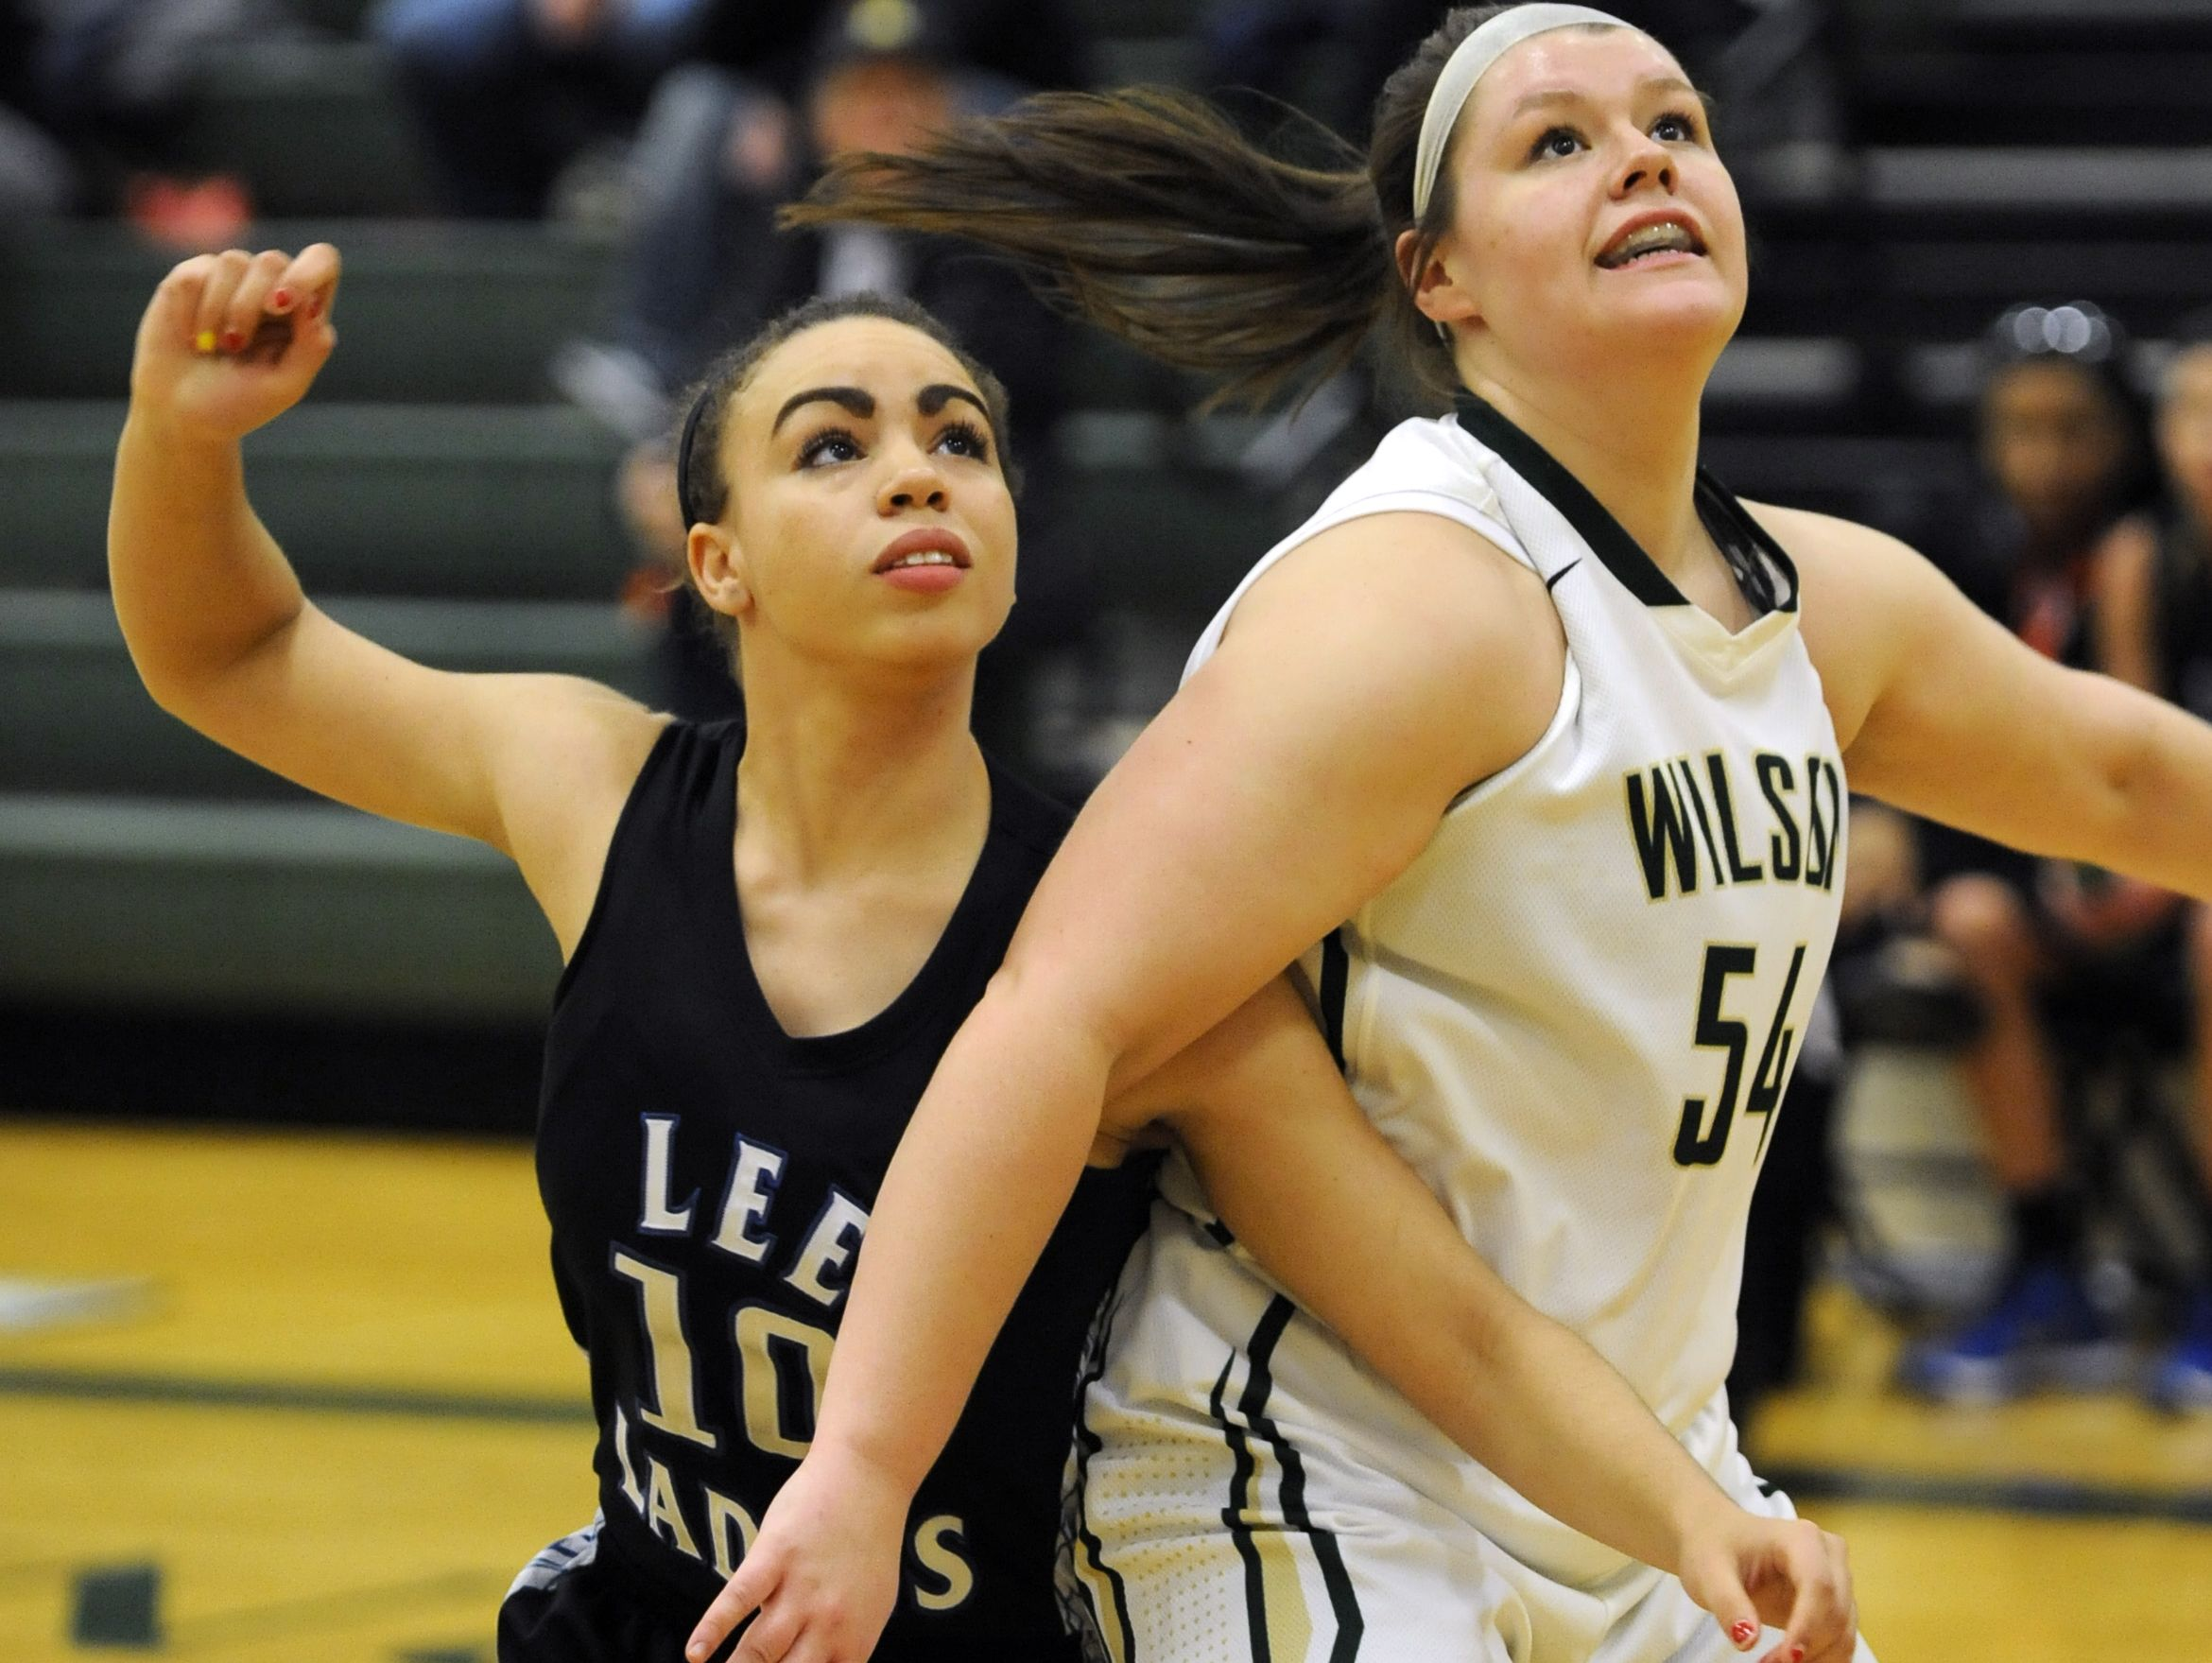 Former Wilson Memorial standout Jordan Sondrol, right, played on the same AAU team as her younger sister.